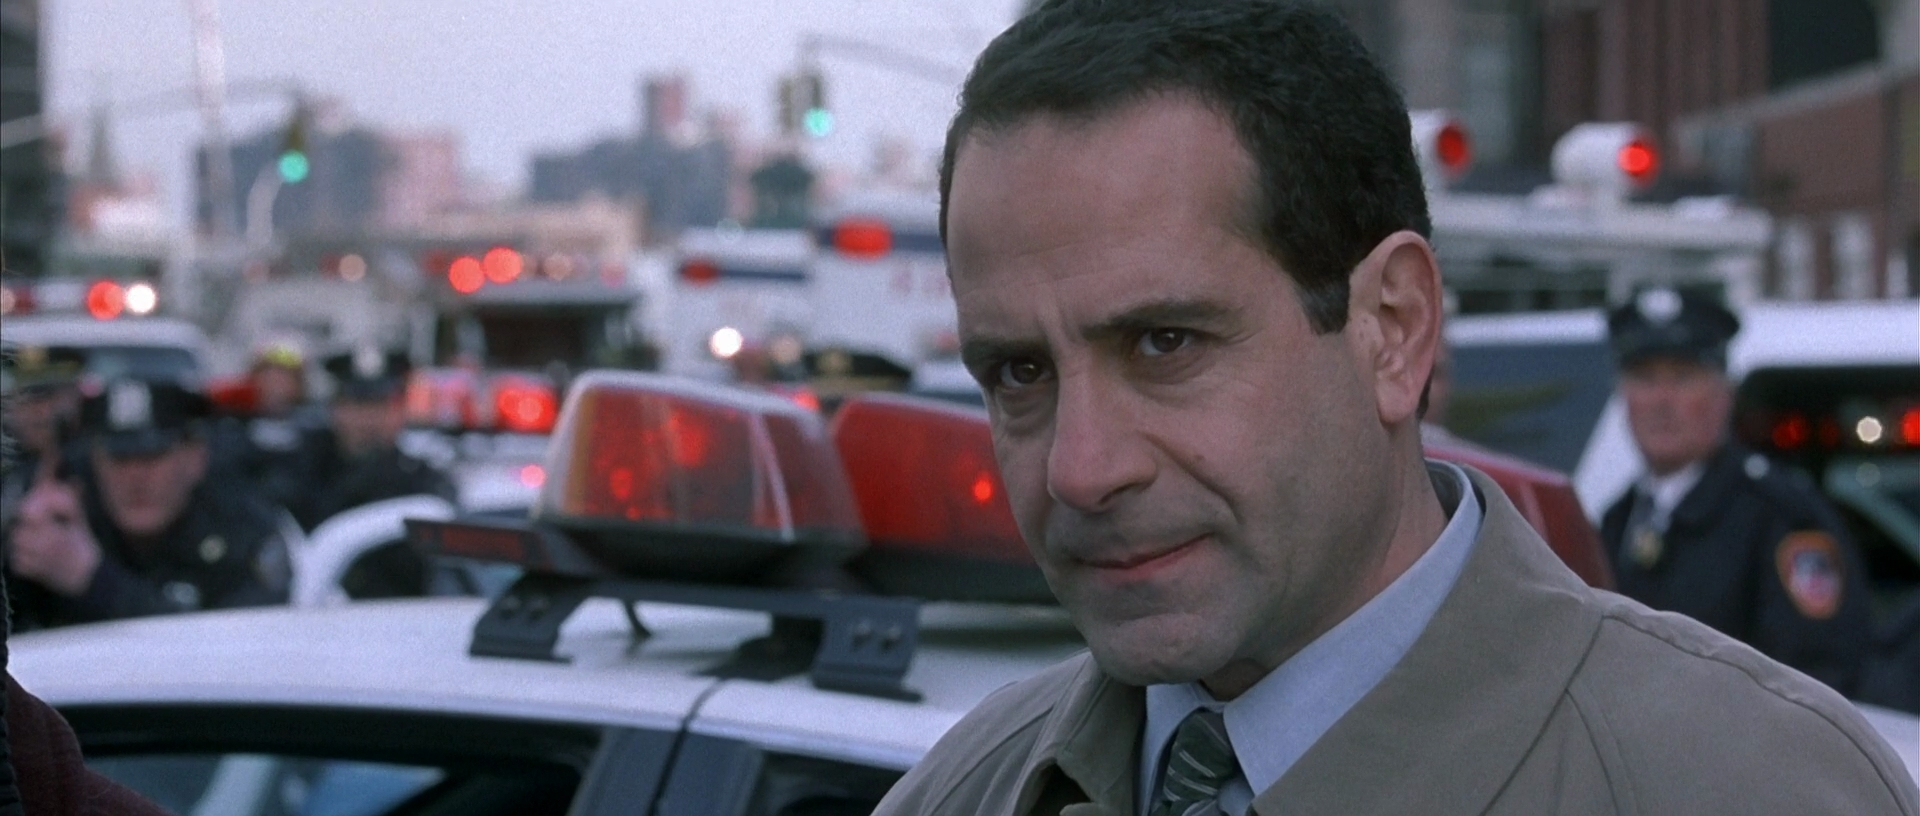 Tony-shalhoub Screencap